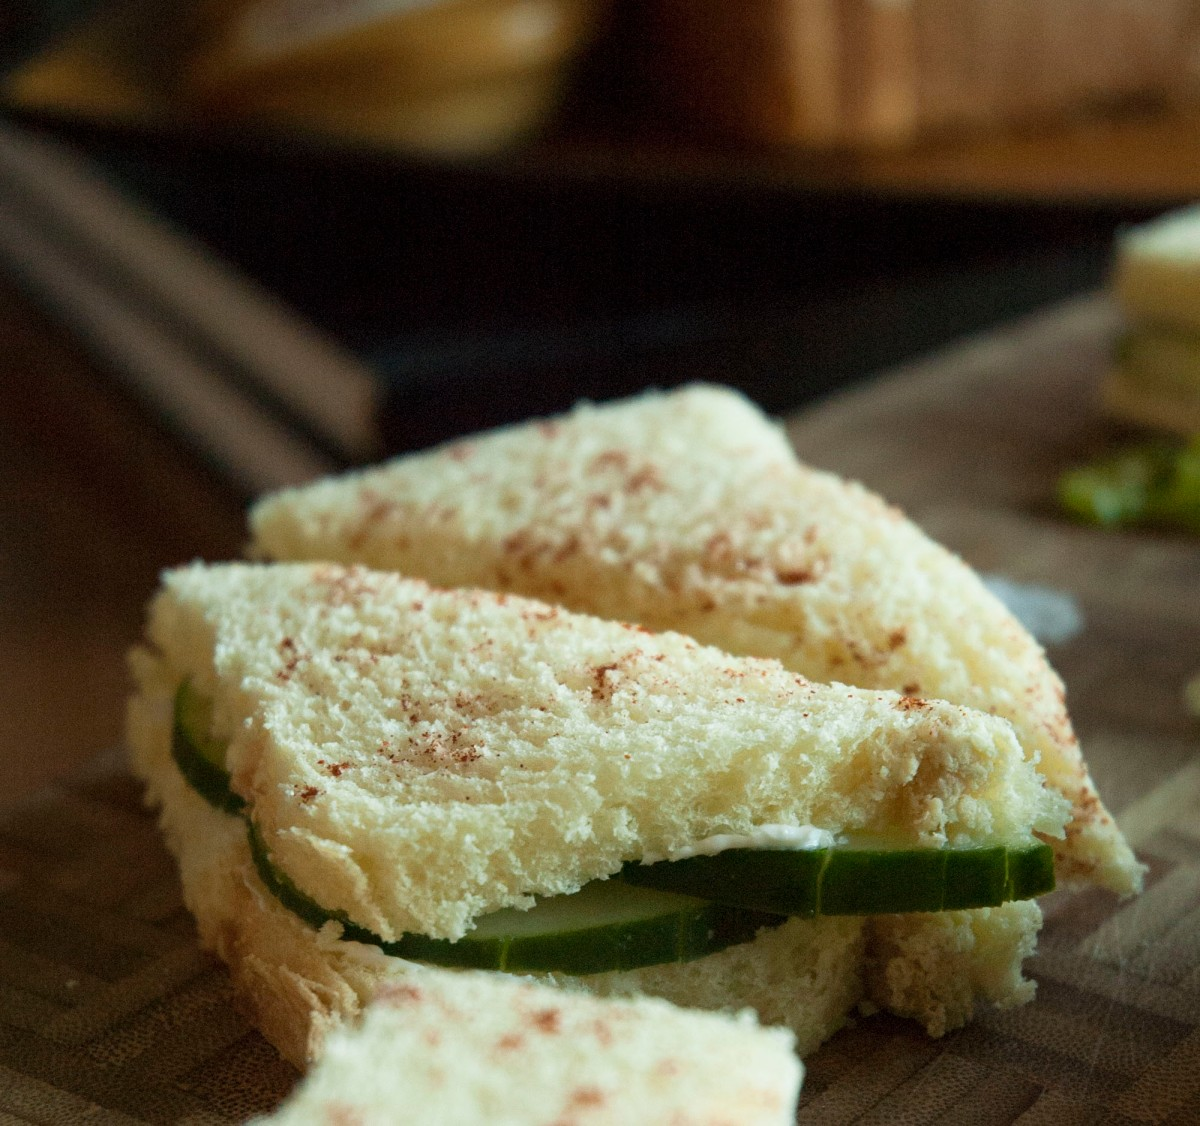 Menu: Cucumber Sandwiches